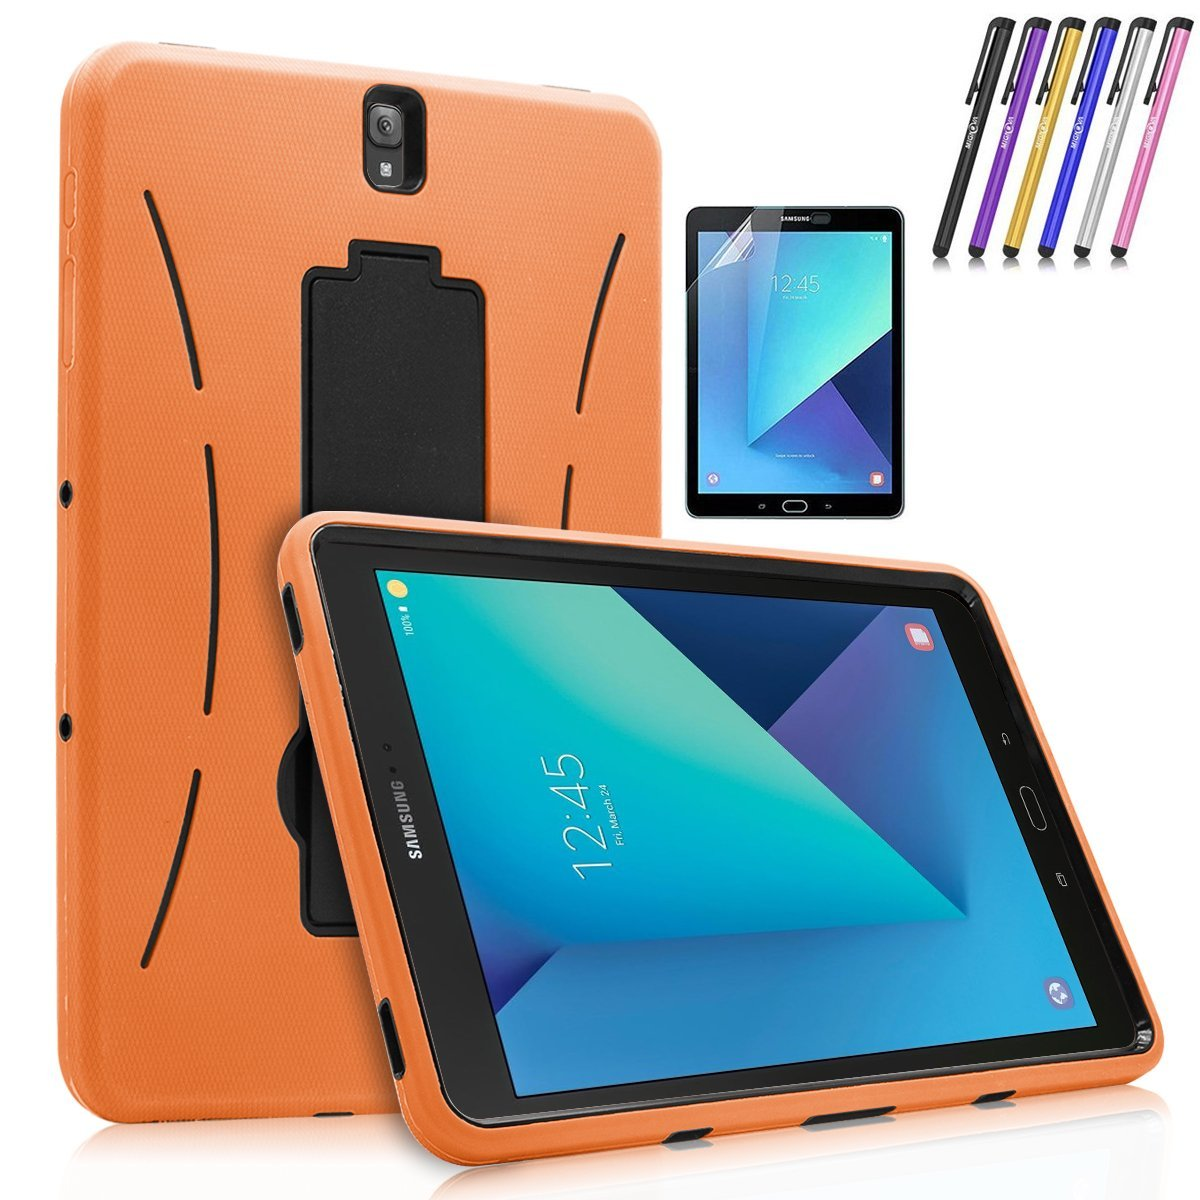 Galaxy Tab S3 9.7 Case, Mignova Heavy Duty Dual Layer Defender Protective Tablet Case Cover with Kickstand for Samsung Galaxy Tab S3 9.7 inch (2017) + Screen Protector Film and Stylus Pen (Black)